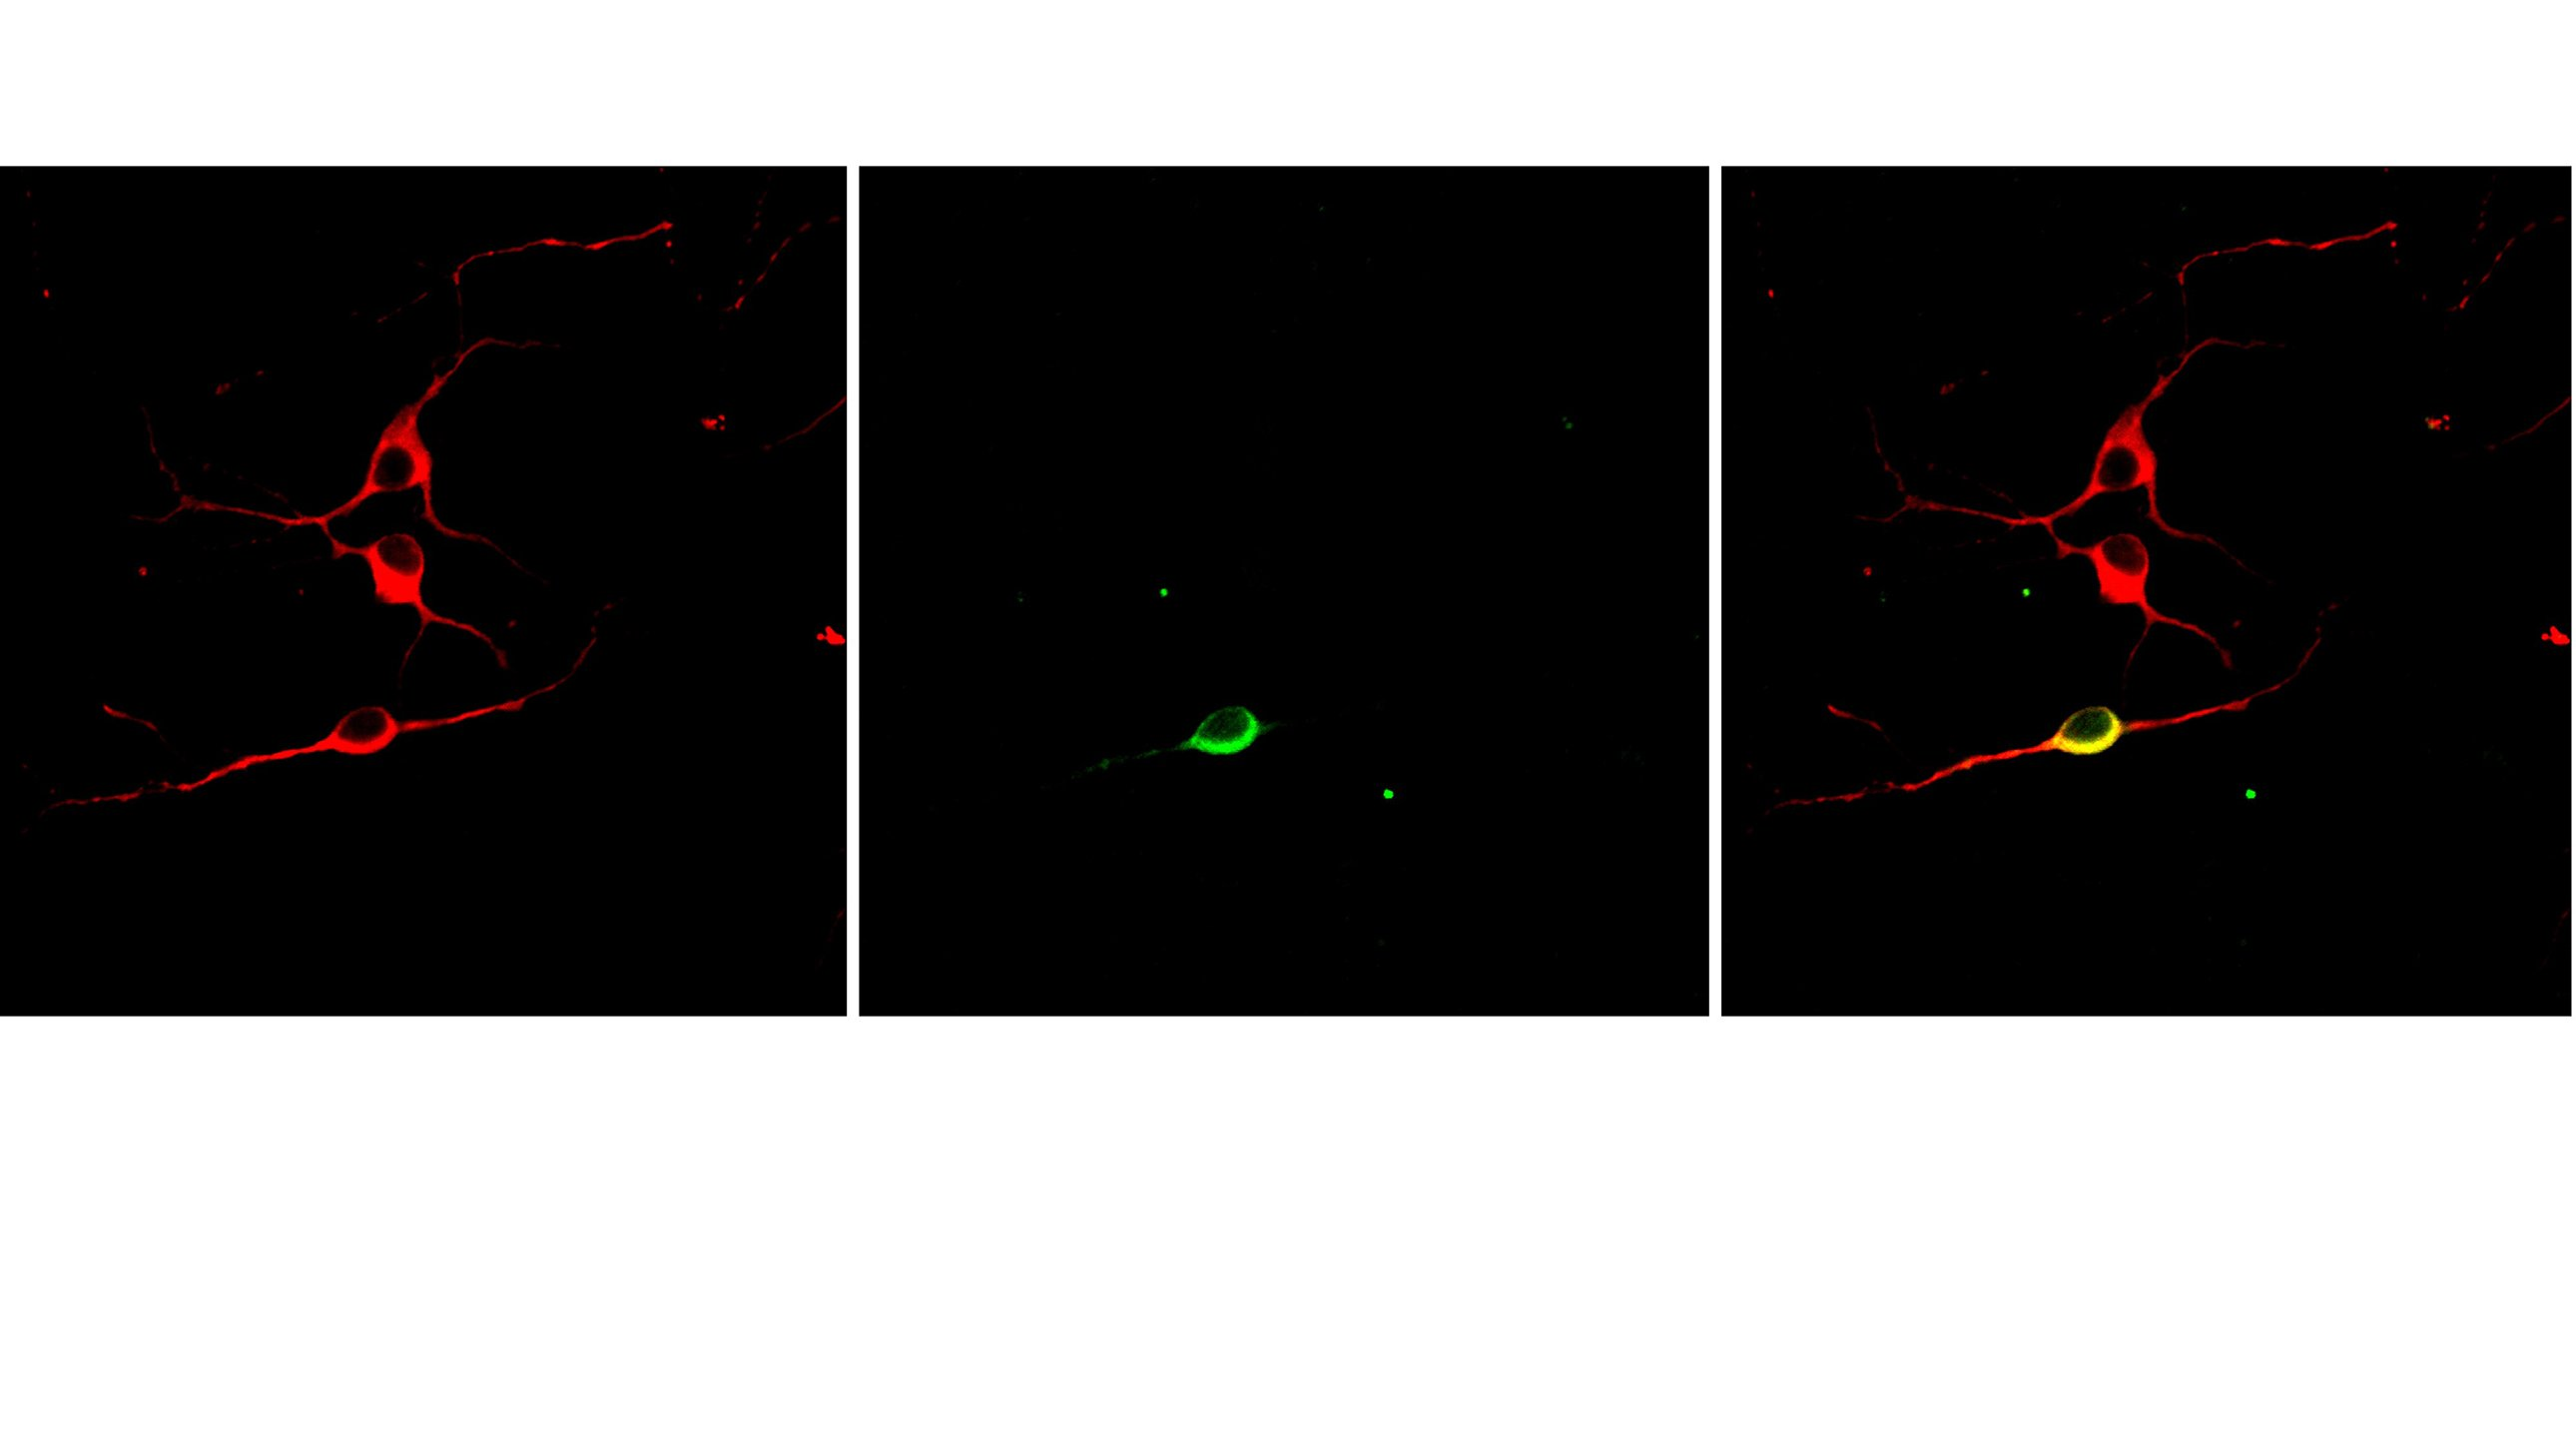 These images of a brain cell culture show dopamine neurons similar to those that die in the brains of Parkinson's disease patients. The image on the left shows a cell culture stained to reveal a marker present in all neurons (red) or only in dopamine neurons (green). The right panel shows a merged image in which a dopamine neuron is stained yellow. (Purdue University image/Aswathy Chandran)